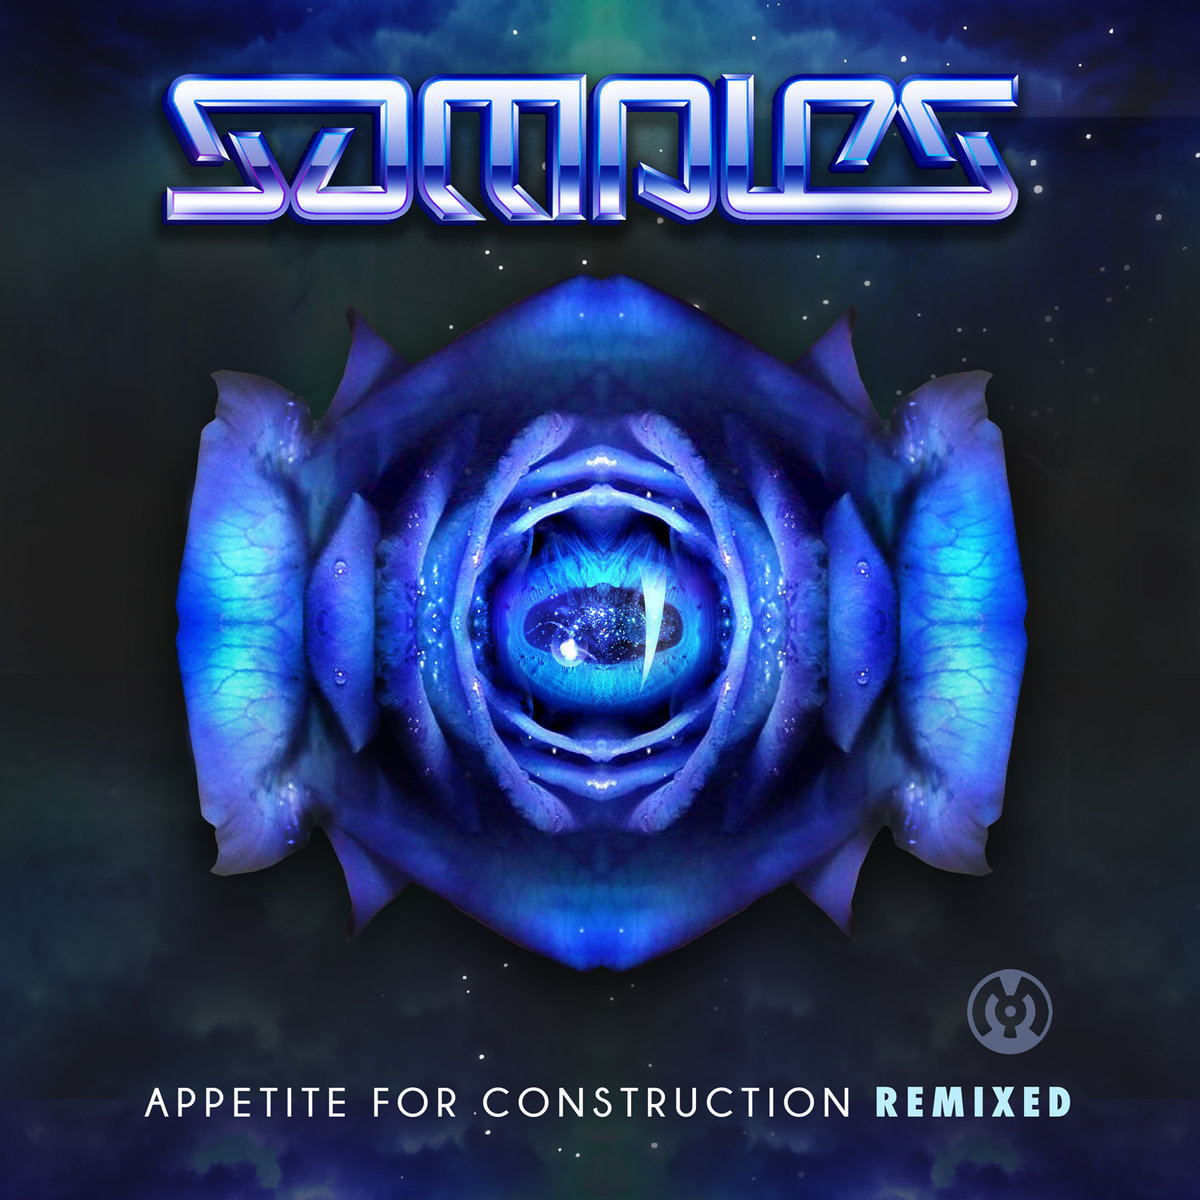 Samples - Corporate (RSK & Get Nasty Remix) @ 'Appetite For Construction Remixed' album (electronic, dubstep)